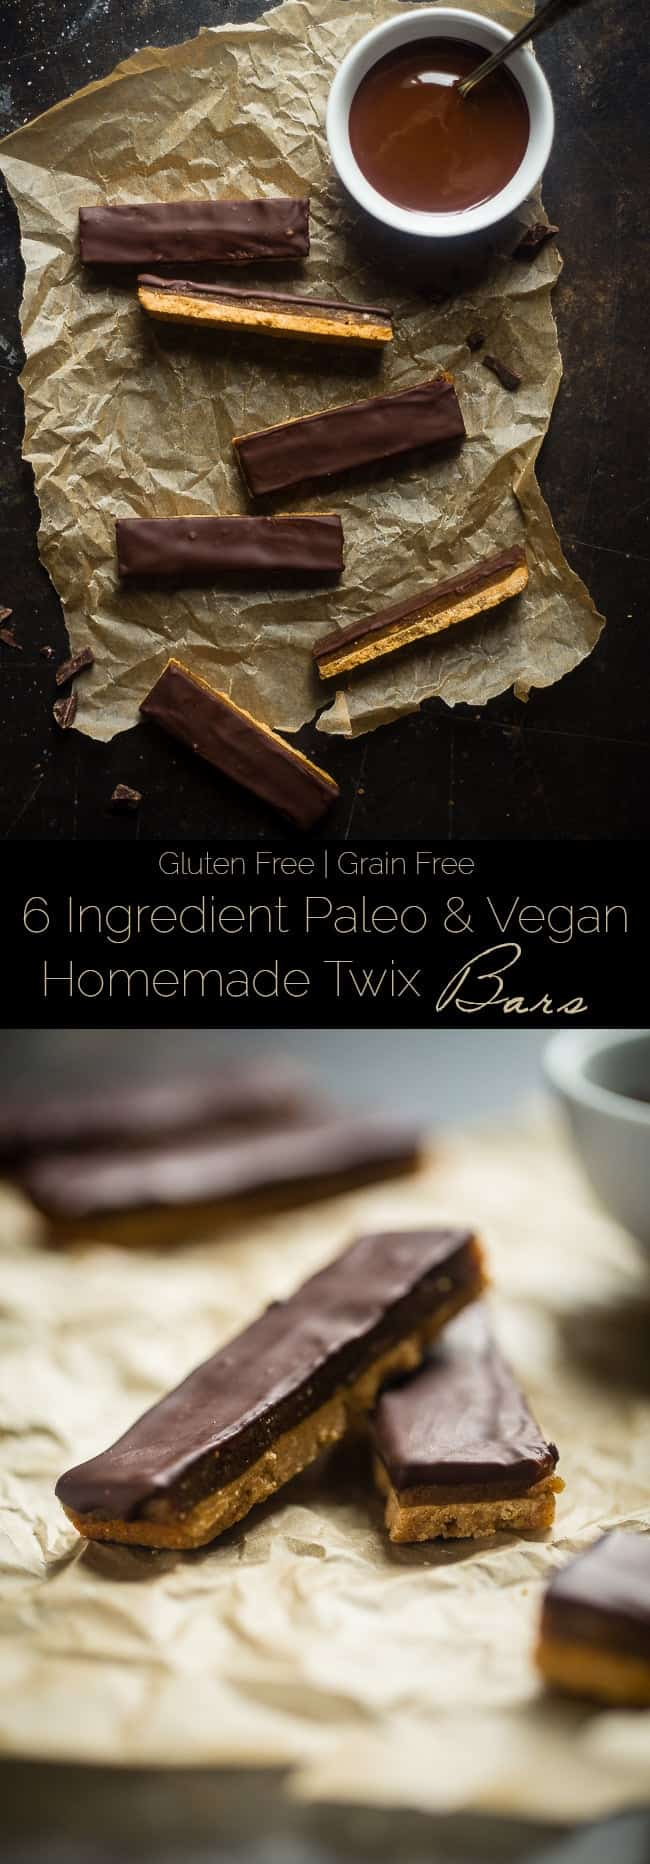 6 Ingredient Paleo and Vegan Homemade Twix Bars - You will NEVER know that these SUPER EASY homemade Twix bars are secretly healthy and gluten/grain/dairy and refined sugar free! | Foodfaithfitness.com | @FoodFaithFit